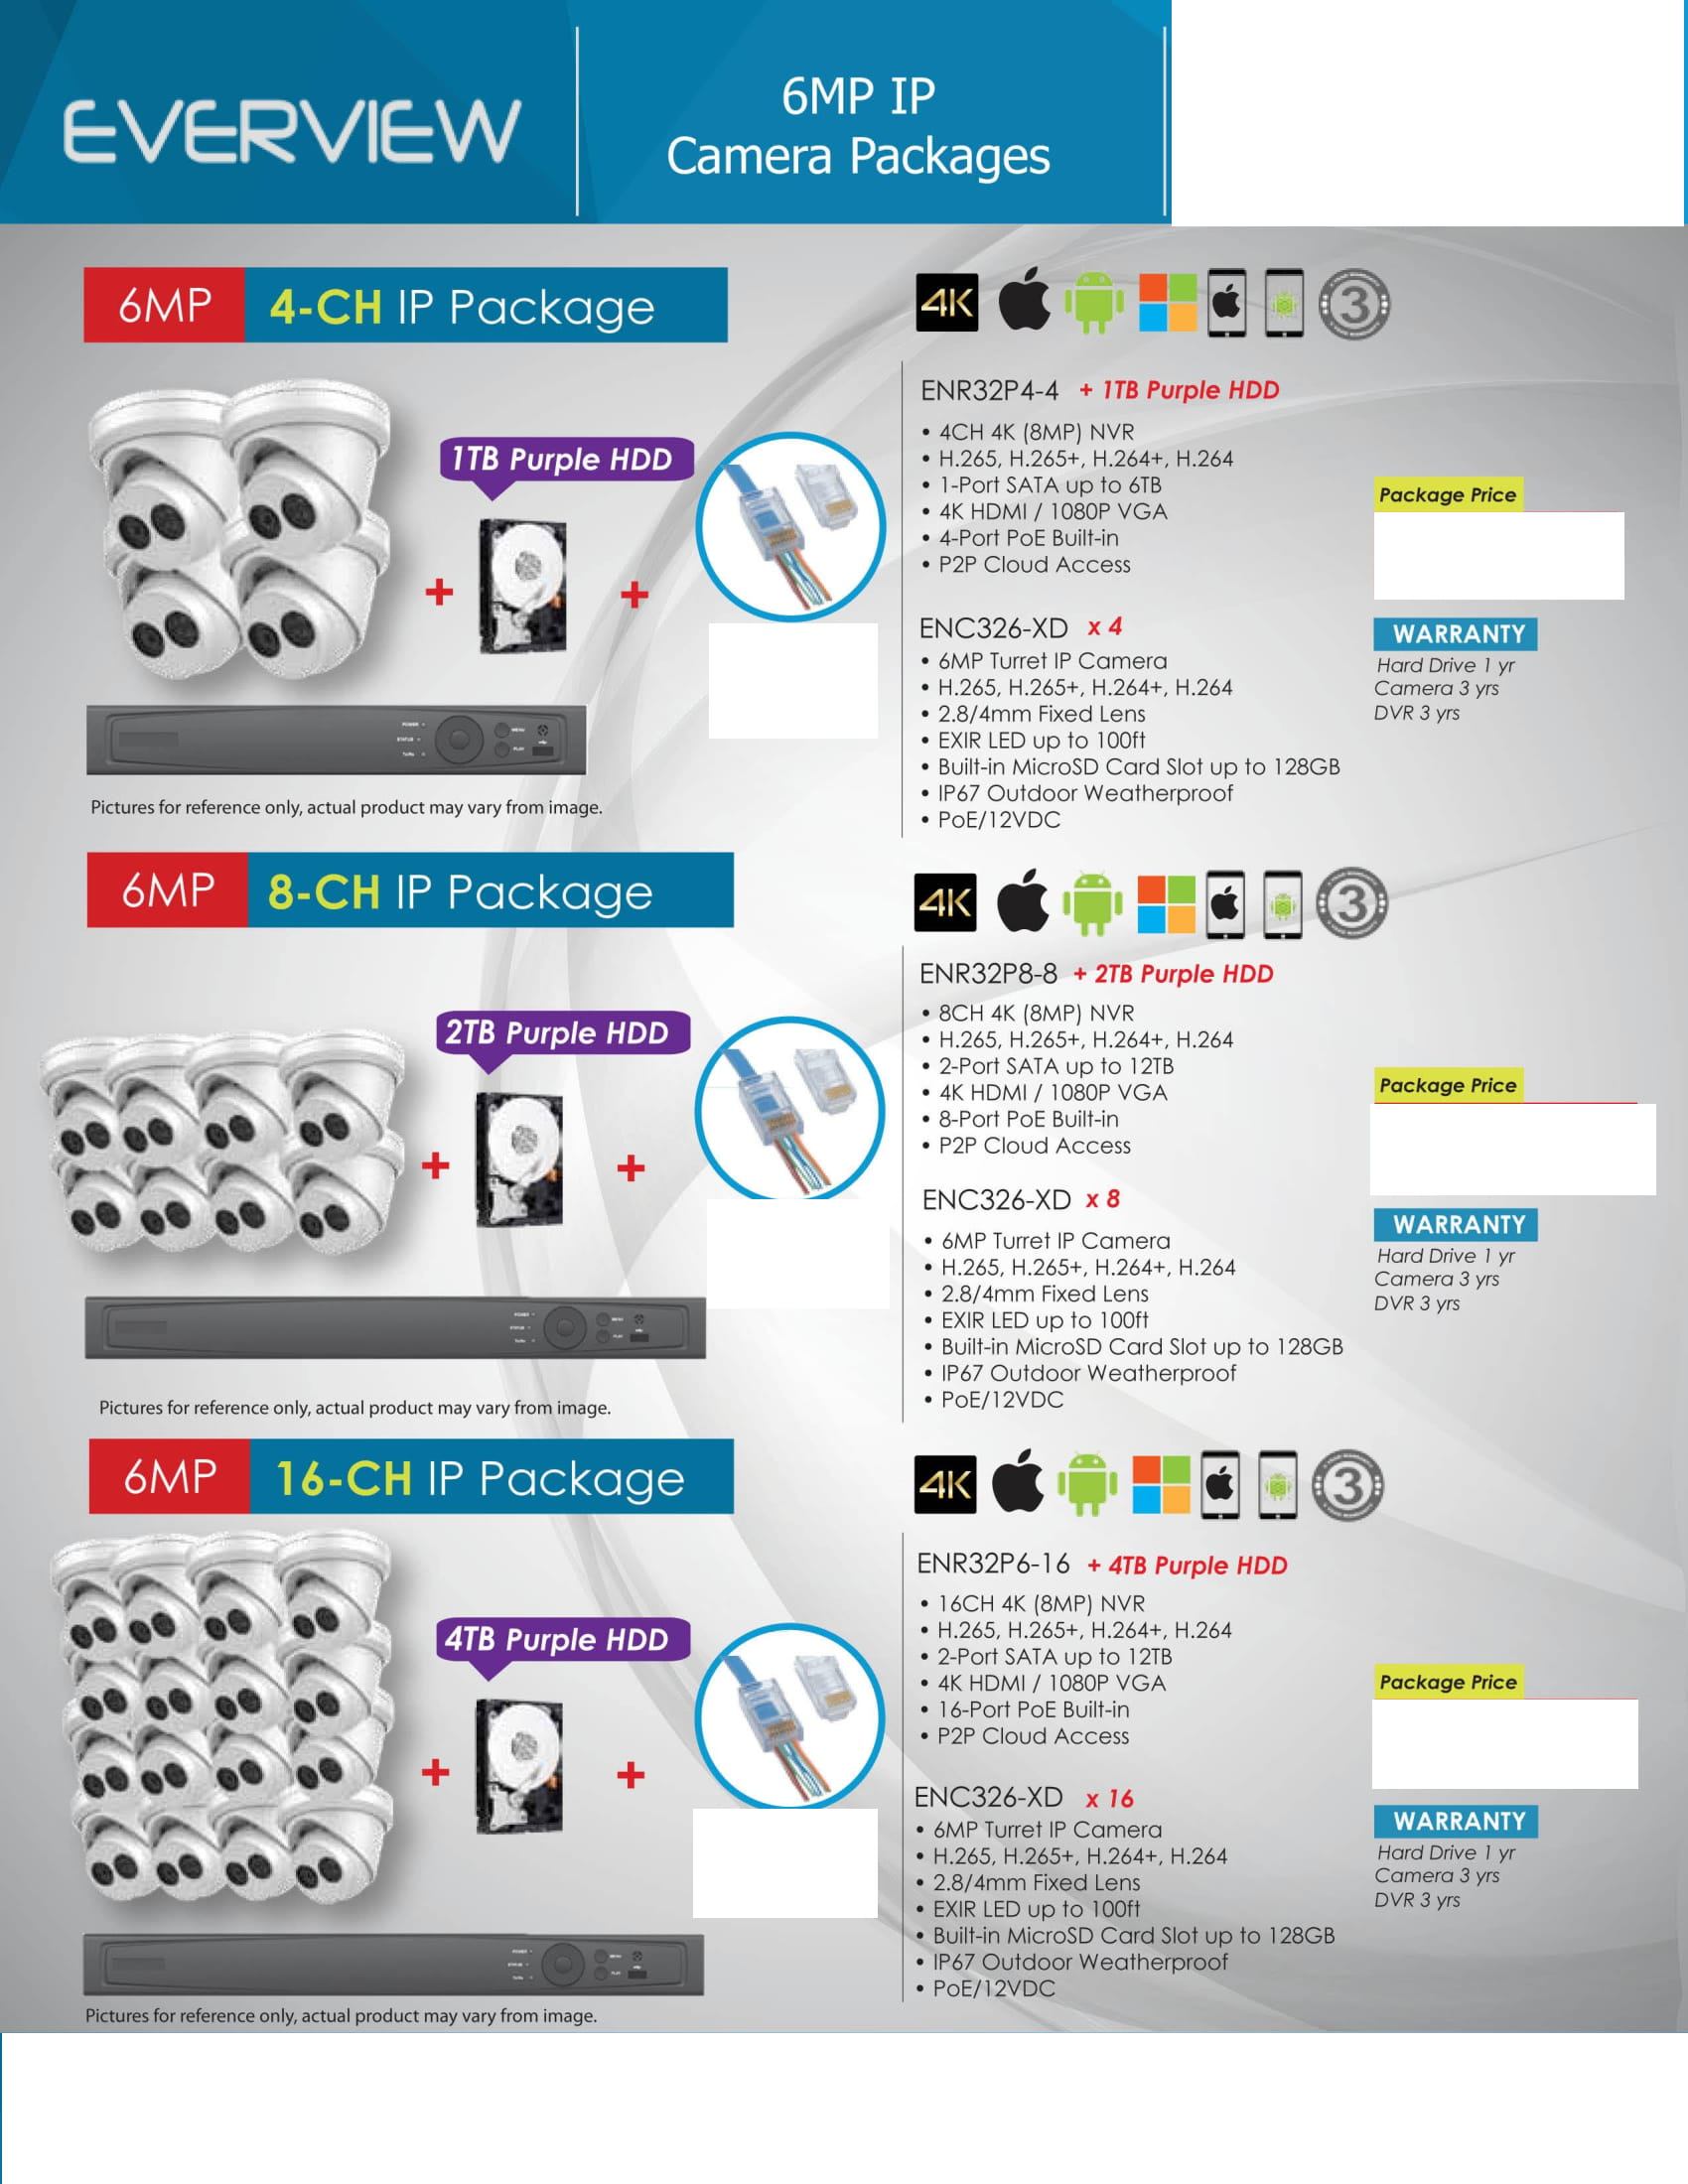 Everview_-Packages-_No-Price-5 HD Camera Packages Full Promotion Price - Compare & Shop